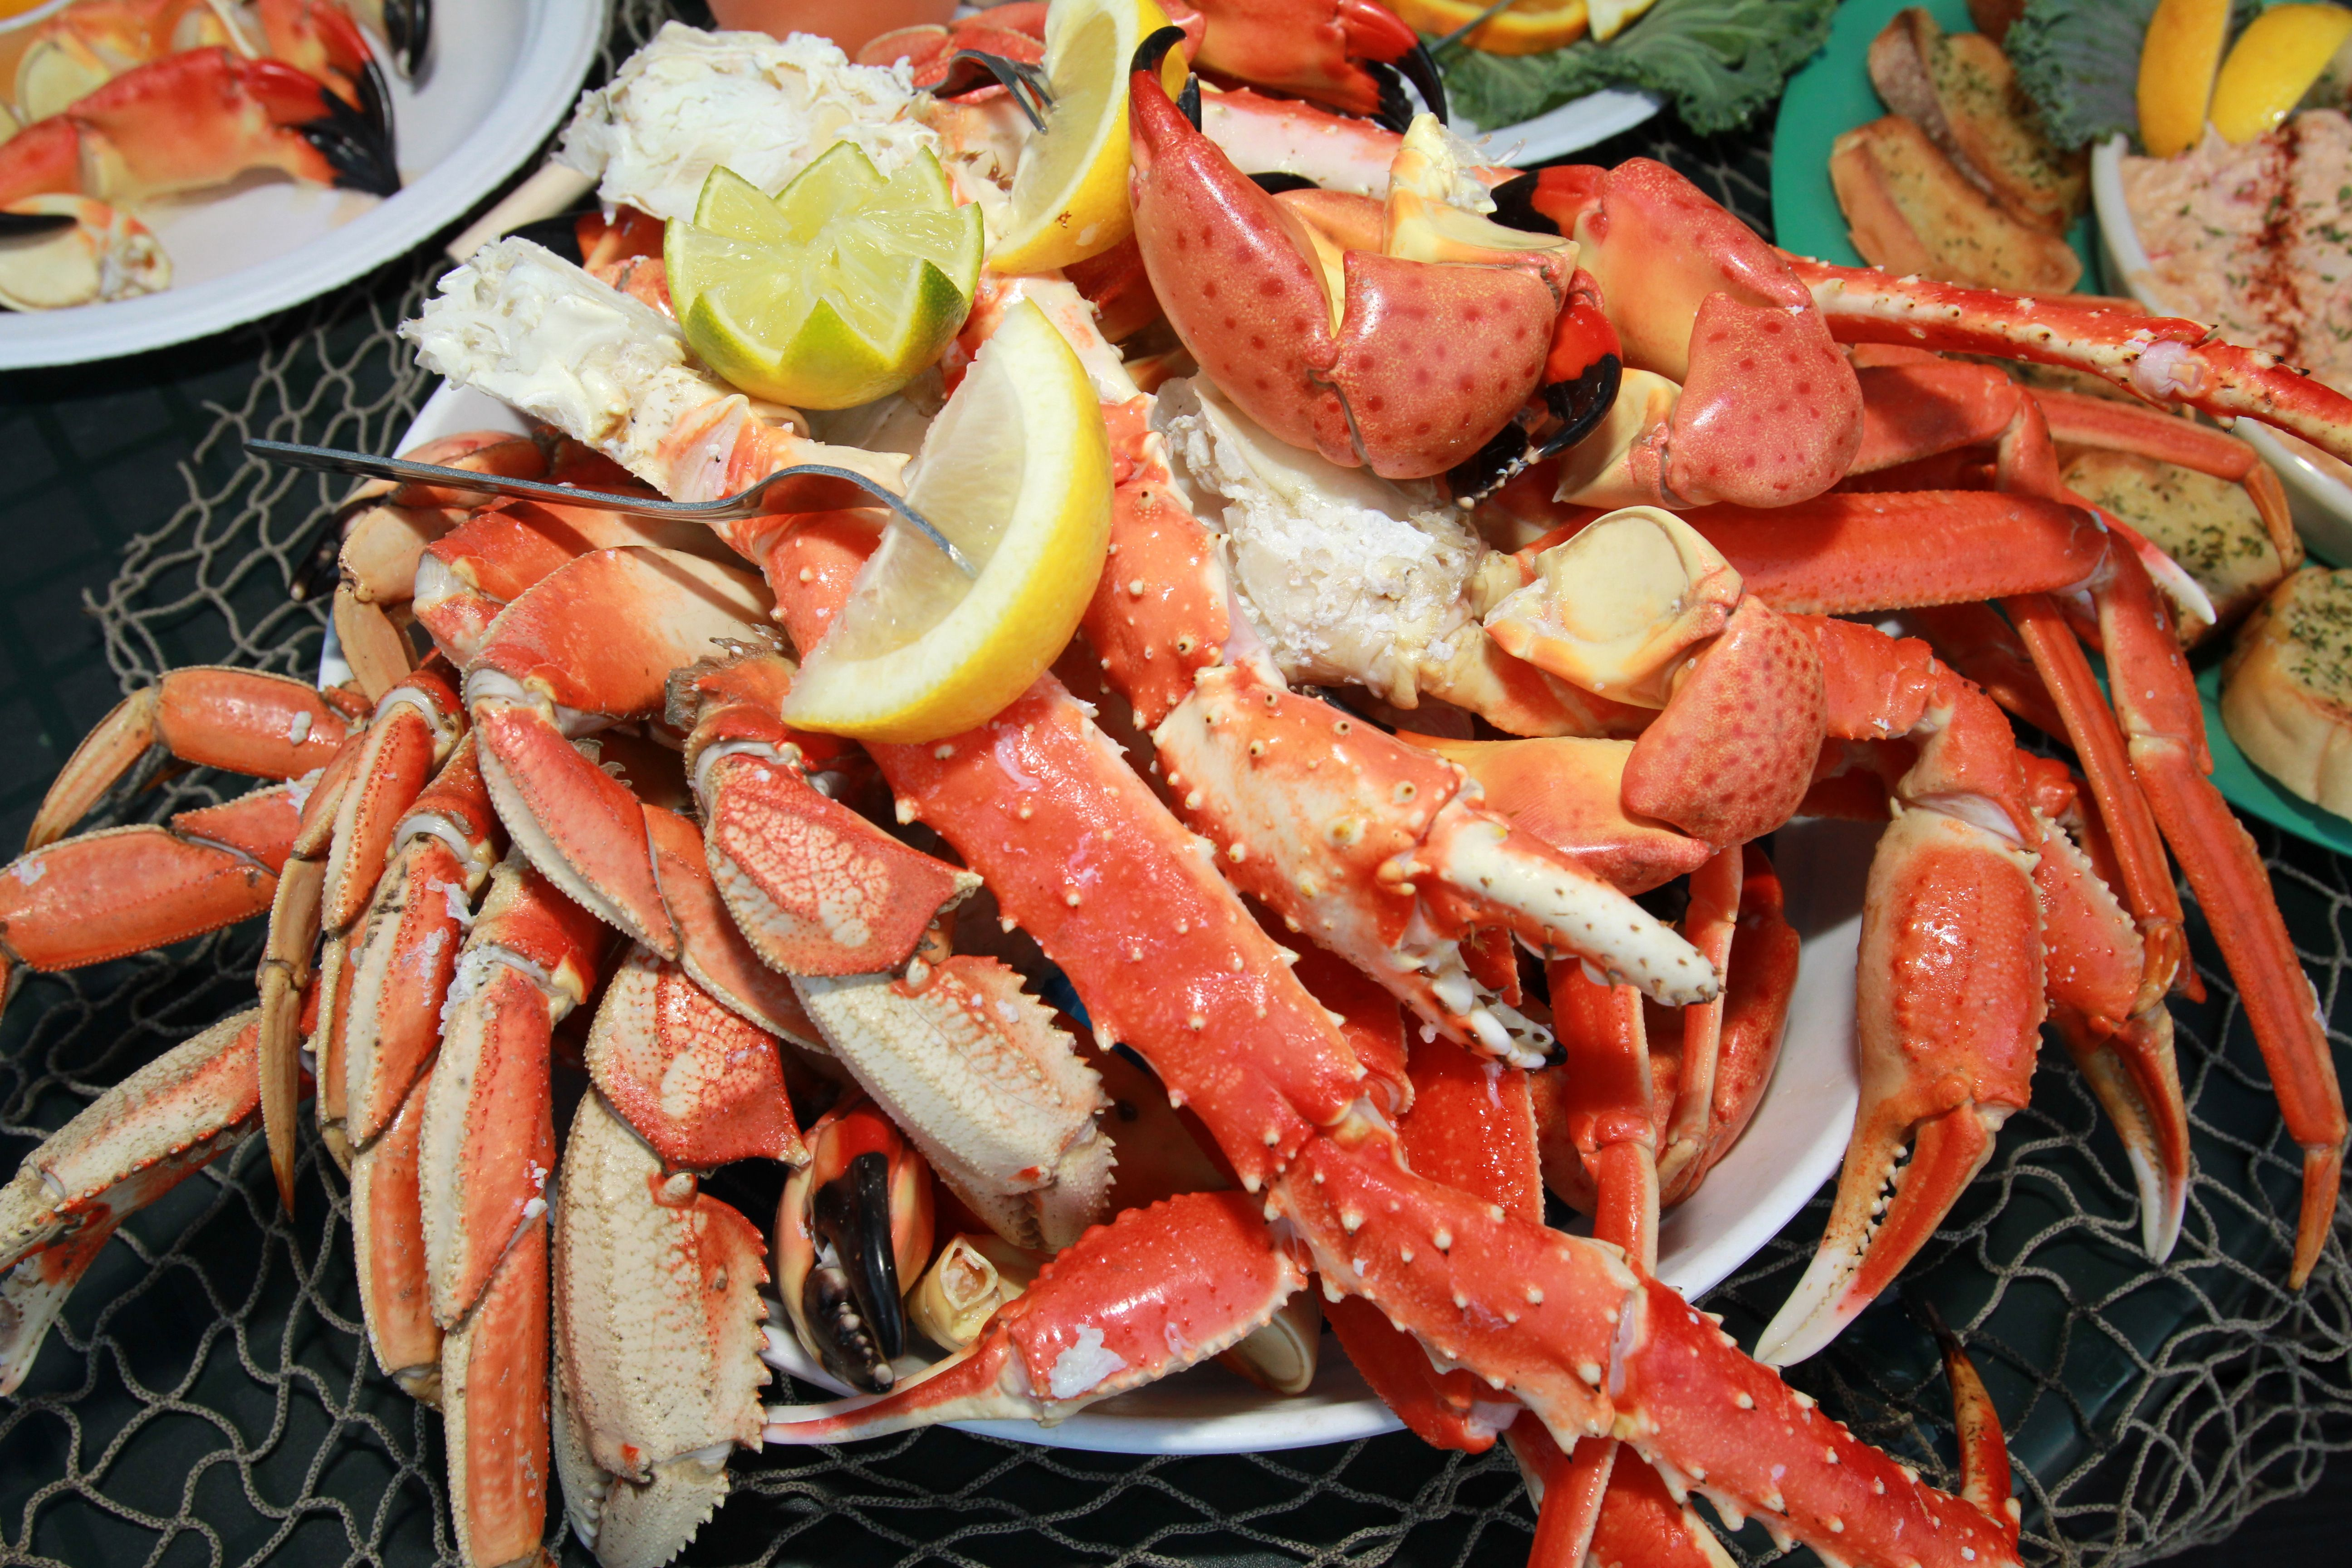 Crab Feast Stone Crab King Crab Dungeness Crab And Snow Crab Crablegs Cooters Stonecrab Crab Feast Stone Crab Season Food